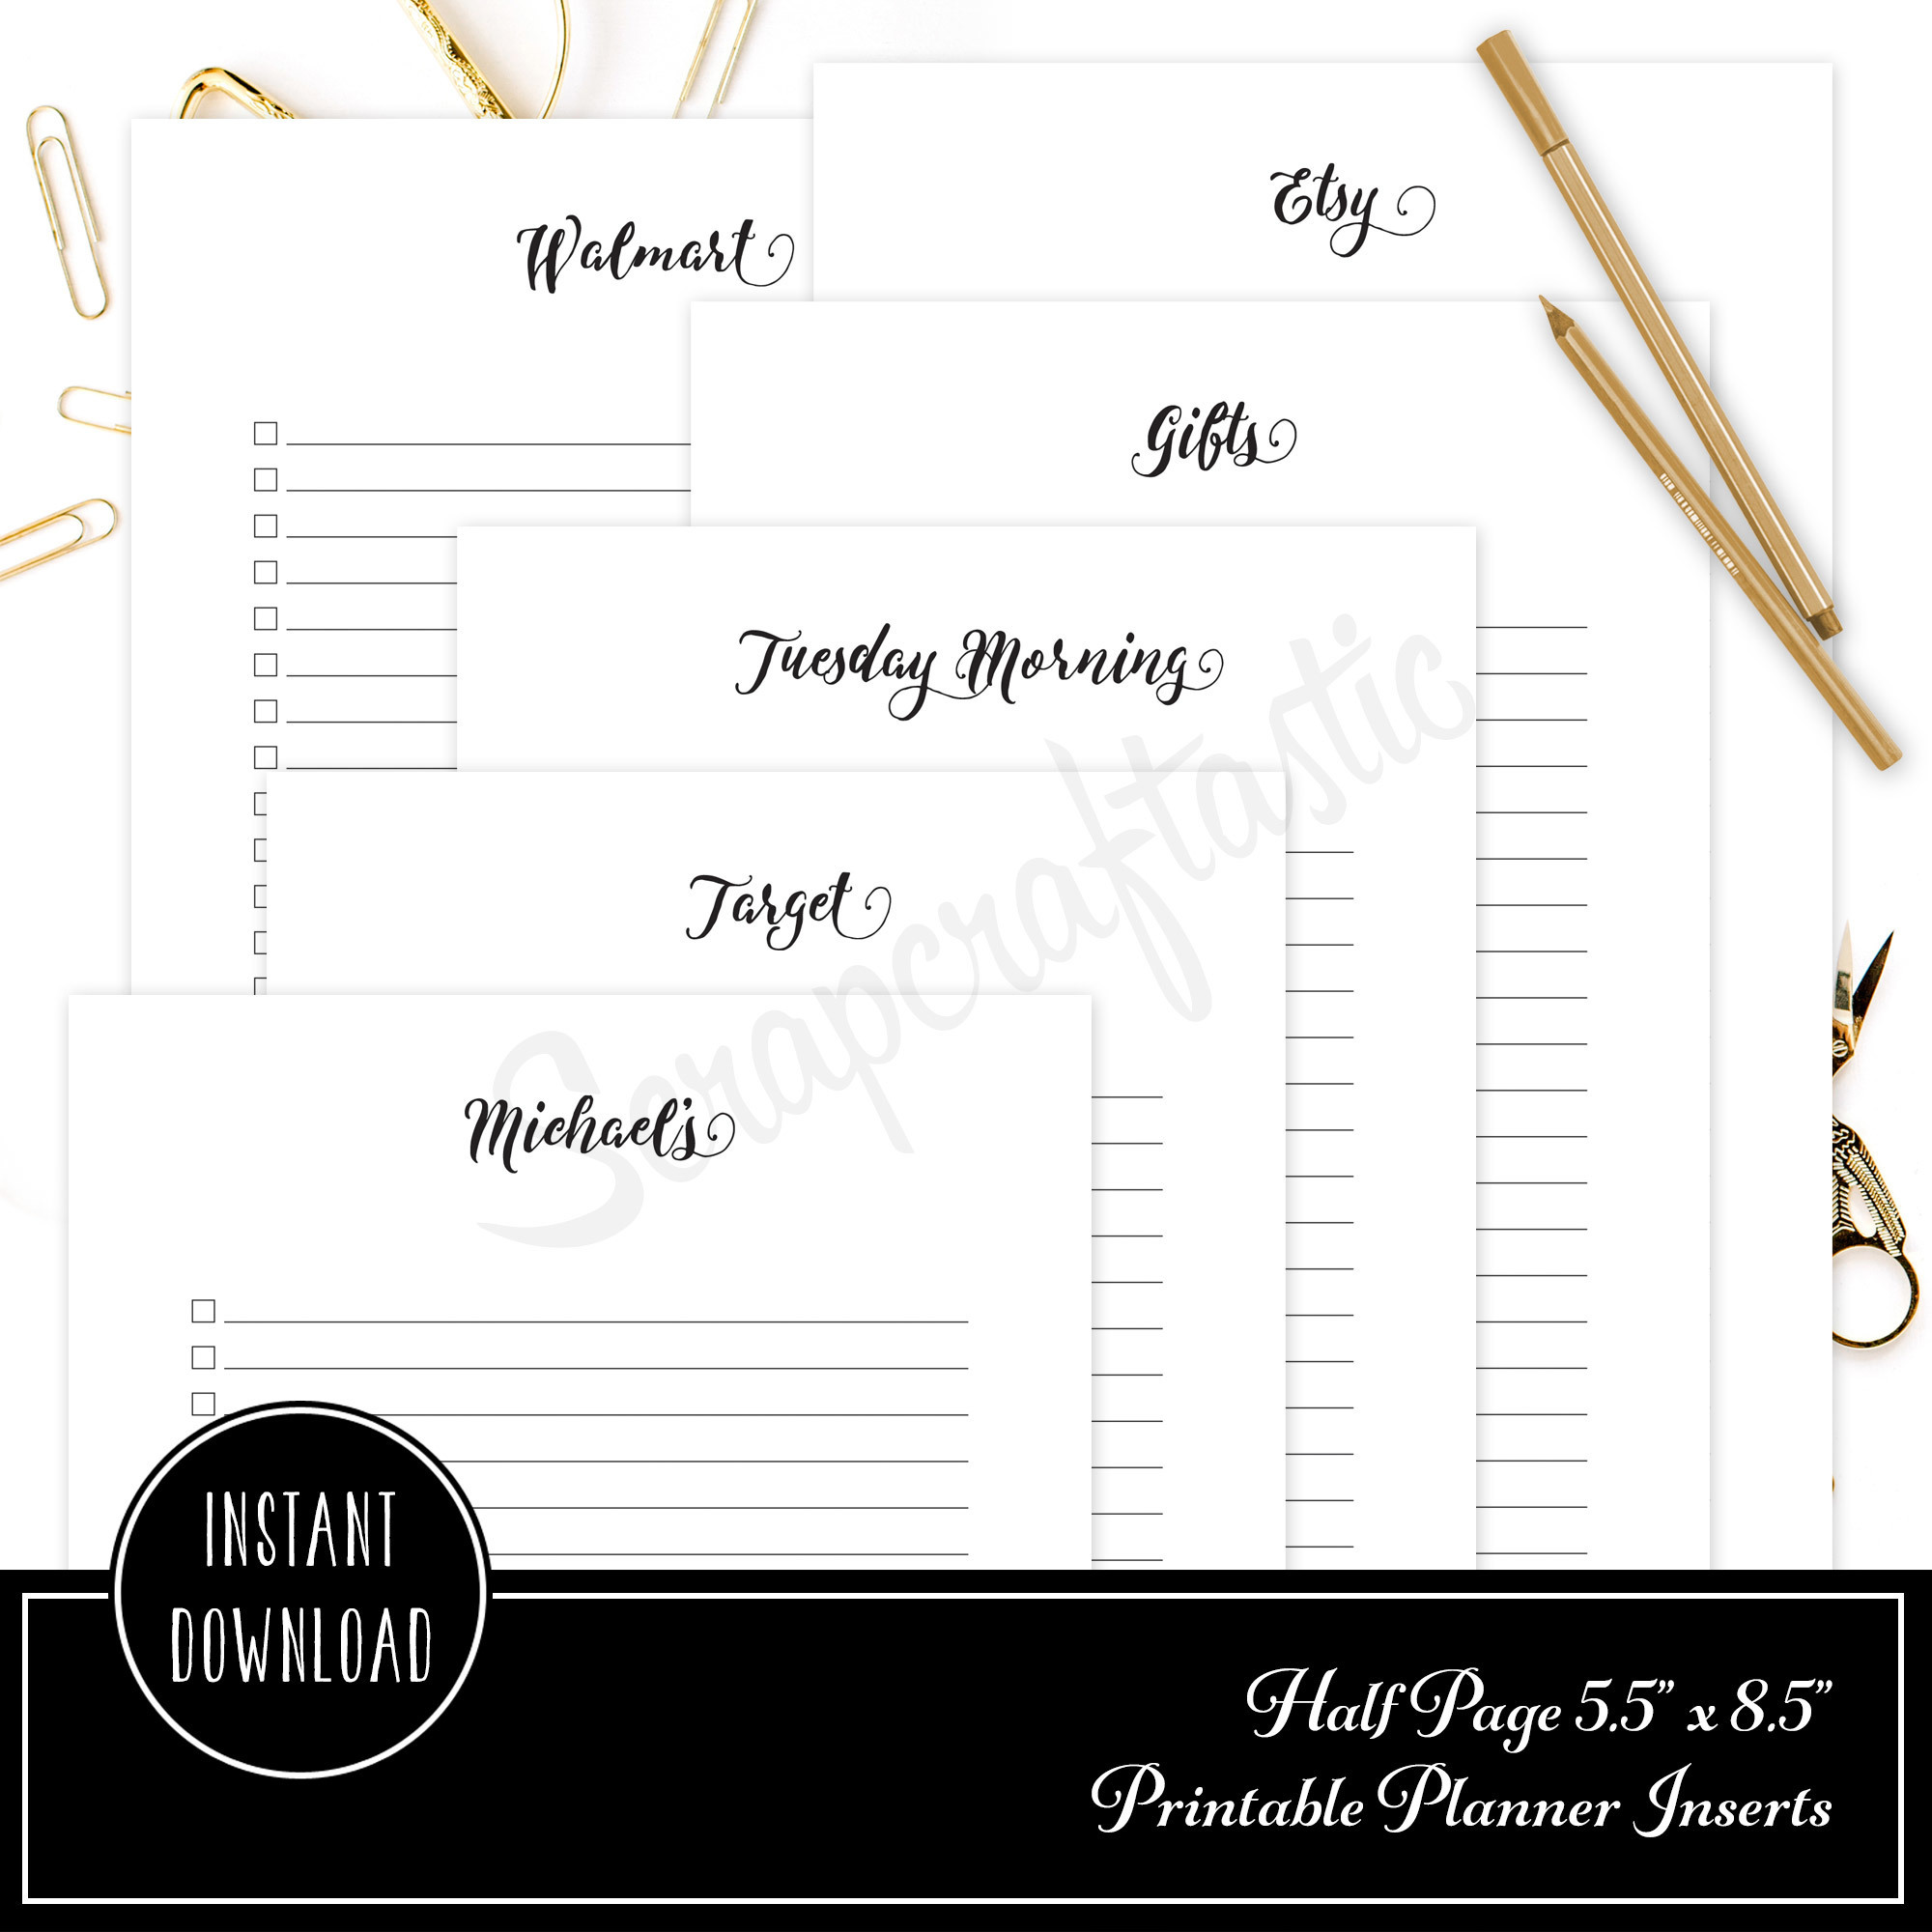 [PRINTED] Shopping Check List Half Page/A5 Size Printable Planner Inserts 00312